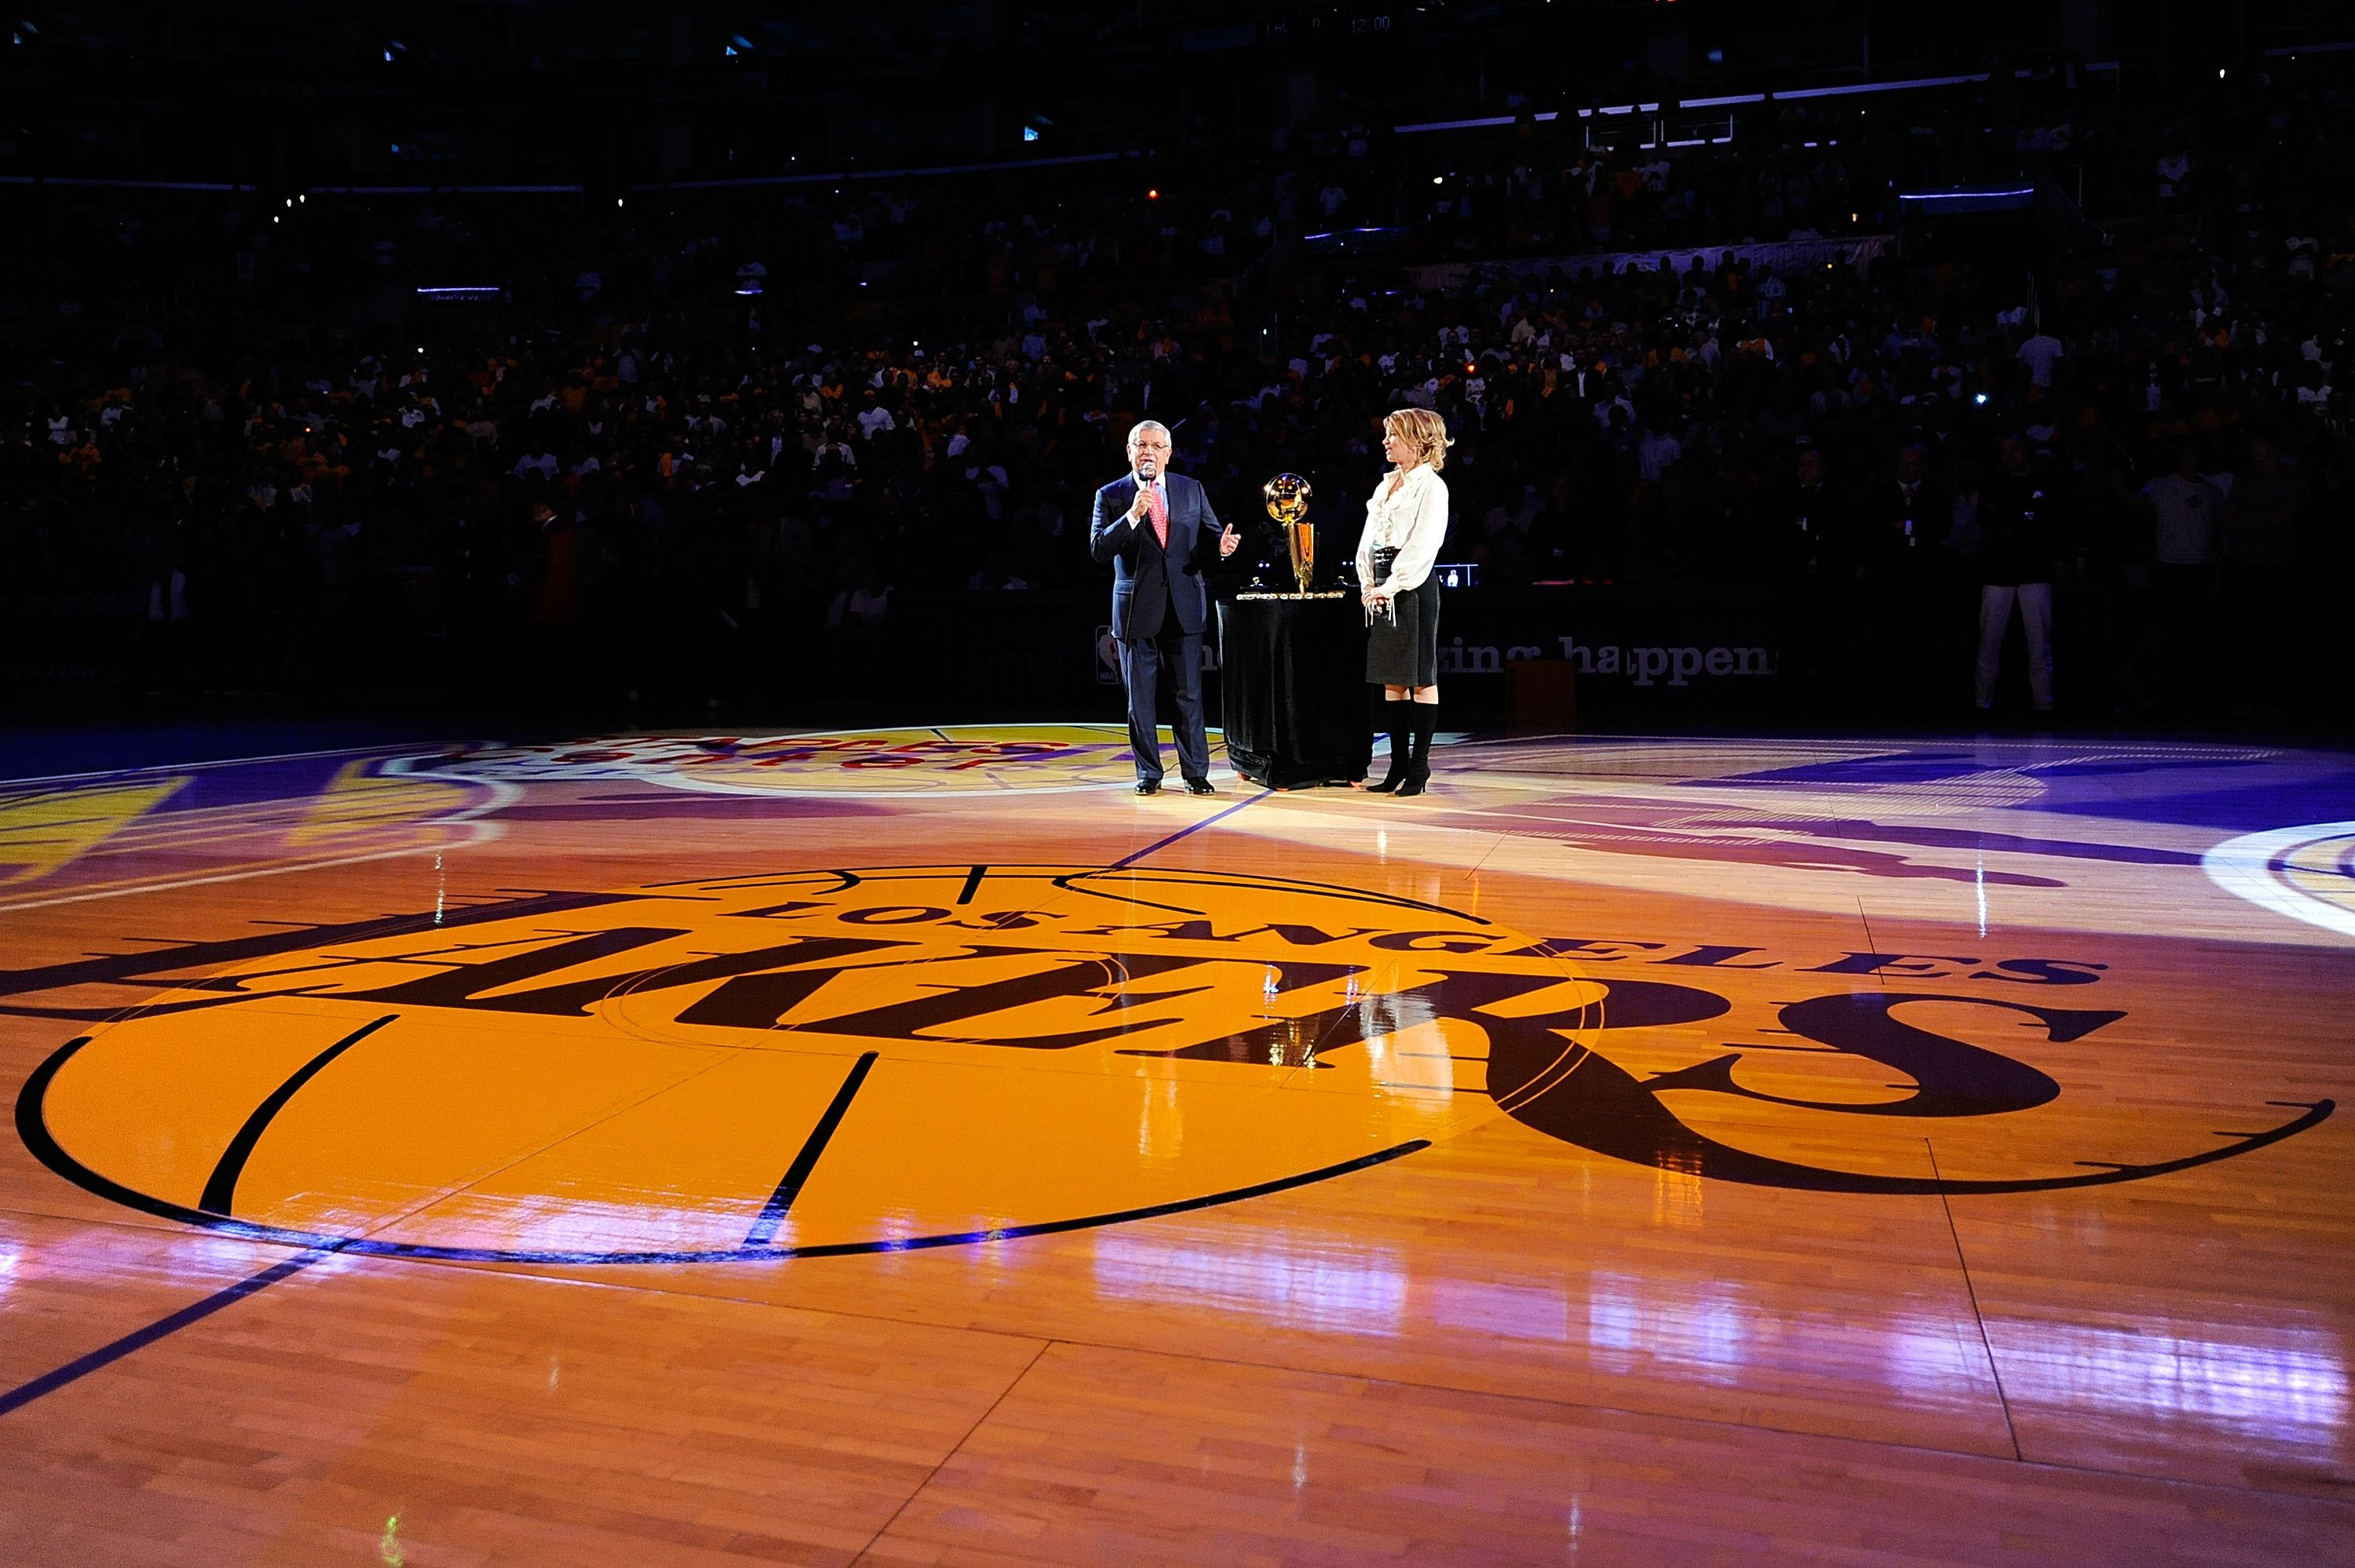 LOS ANGELES, CA - OCTOBER 27:  NBA Commissioner David Stern (L) and Los Angeles Lakers Executive Vice President of Business Operations Jeanie Buss address the crowd before presenting the Los Angeles Lakers with the 2009 NBA Championship rings before the s